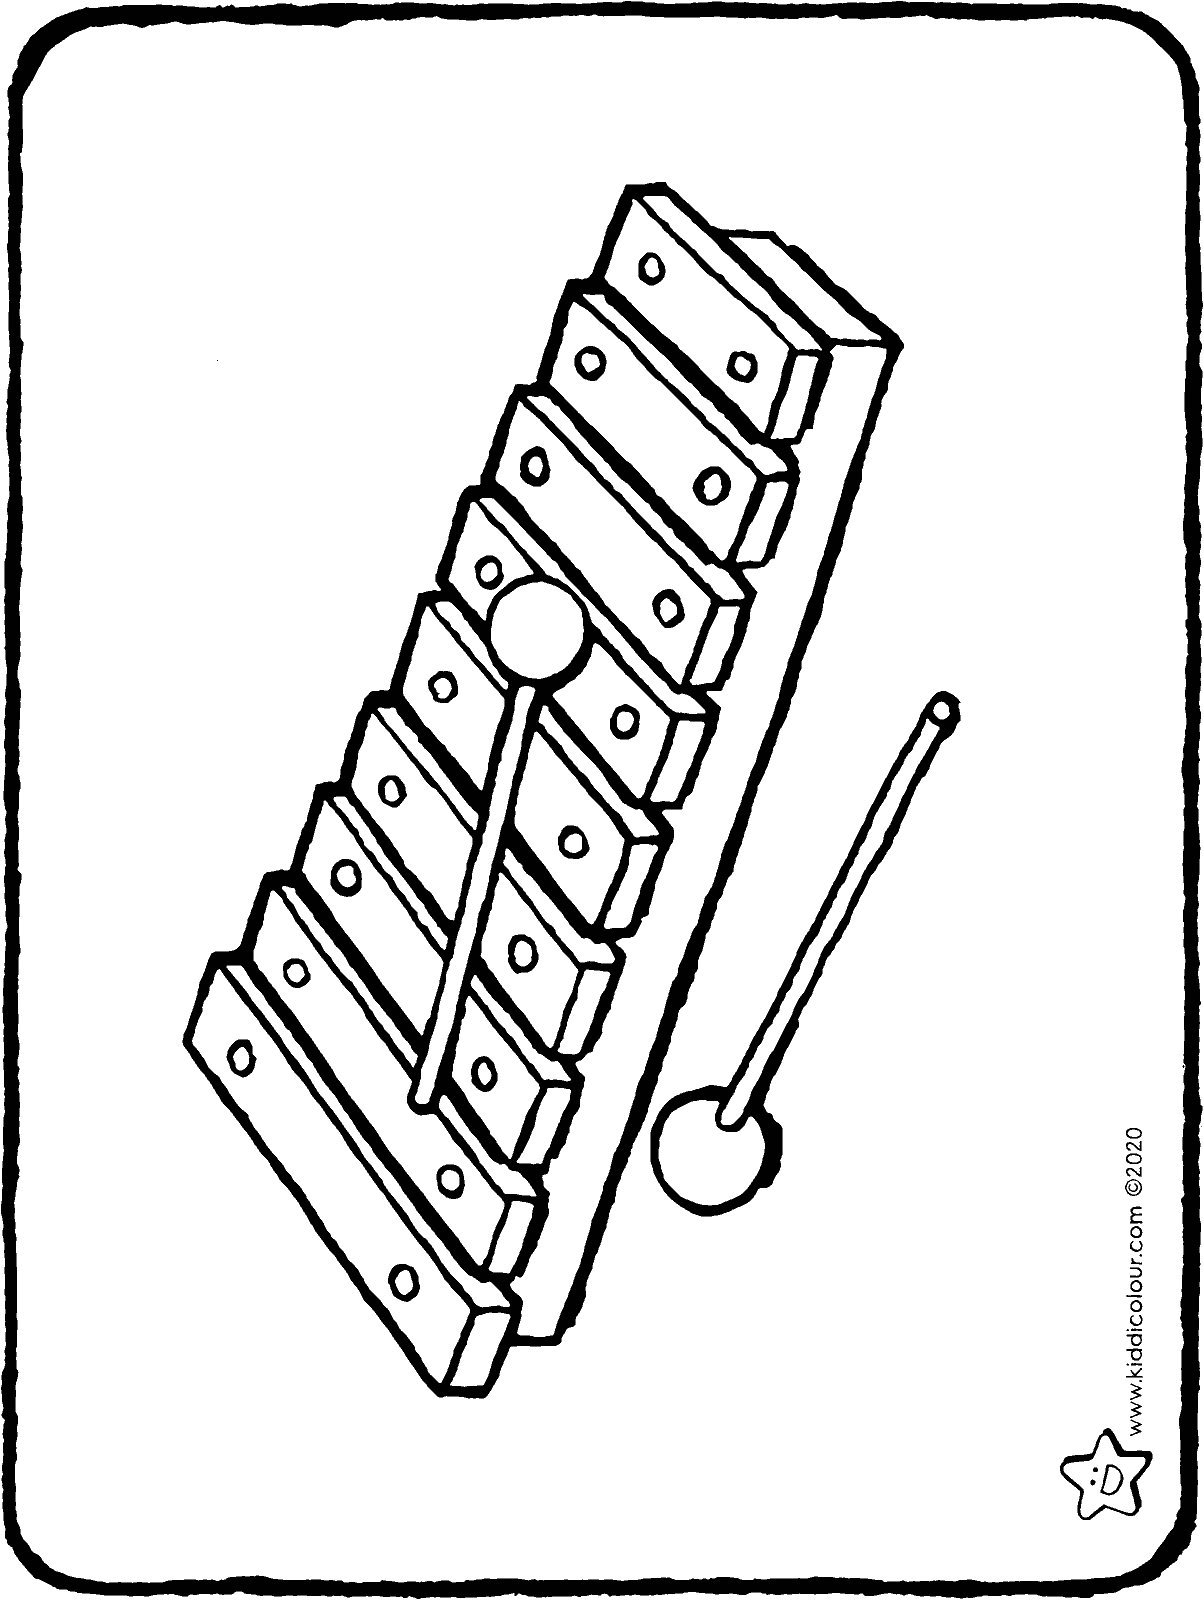 xylophone colouring page drawing colouring picture 01H